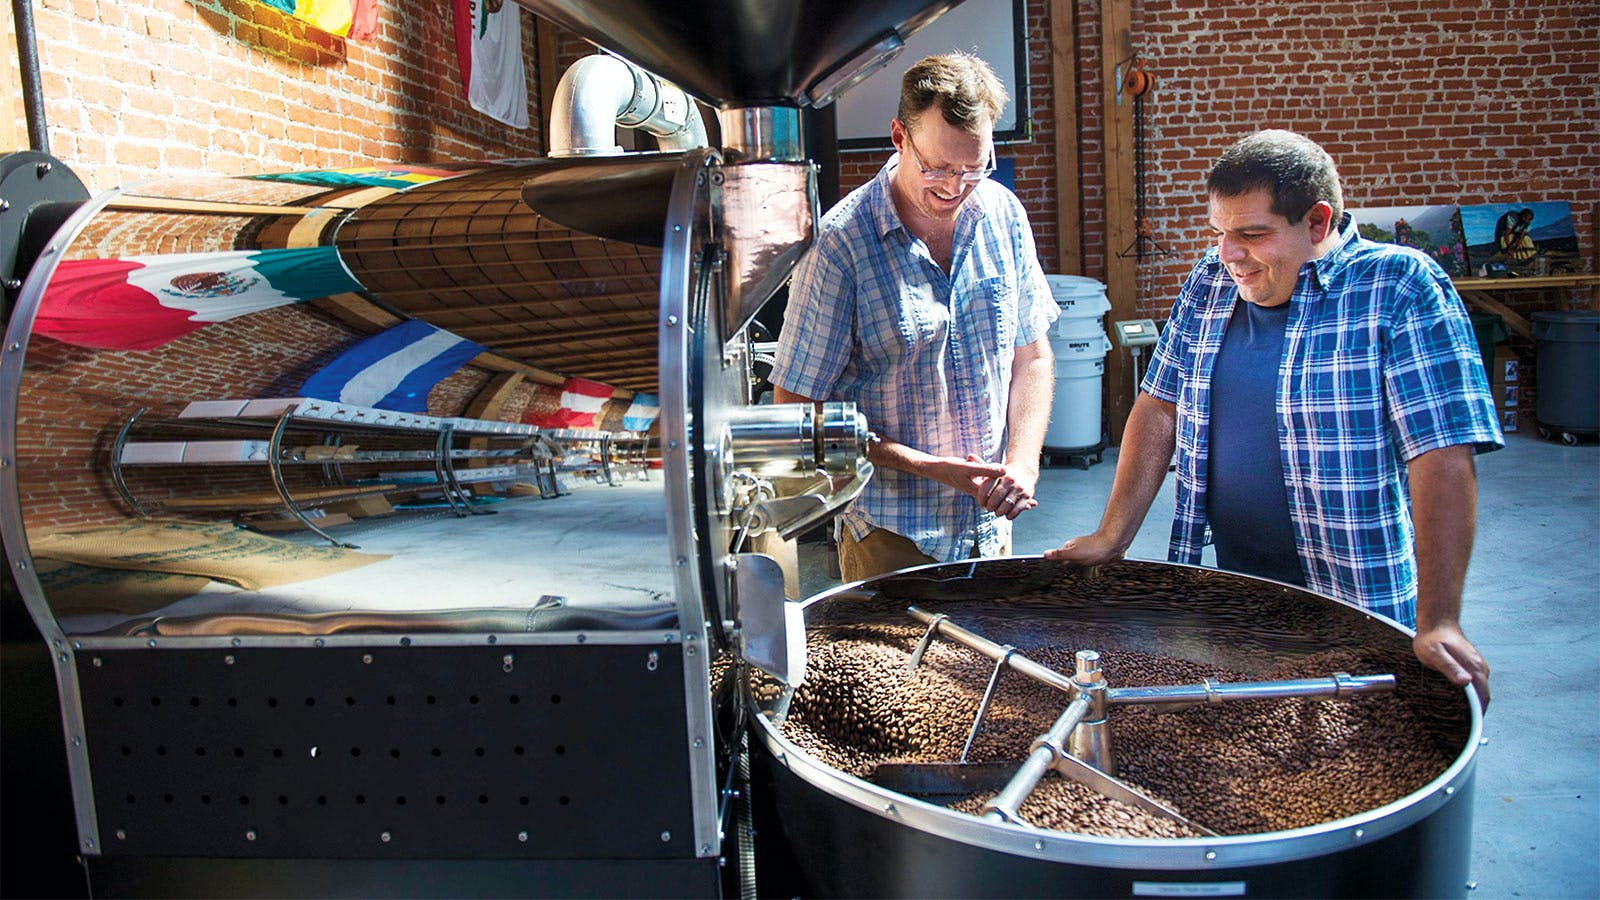 The Mother of Direct-Trade Coffee